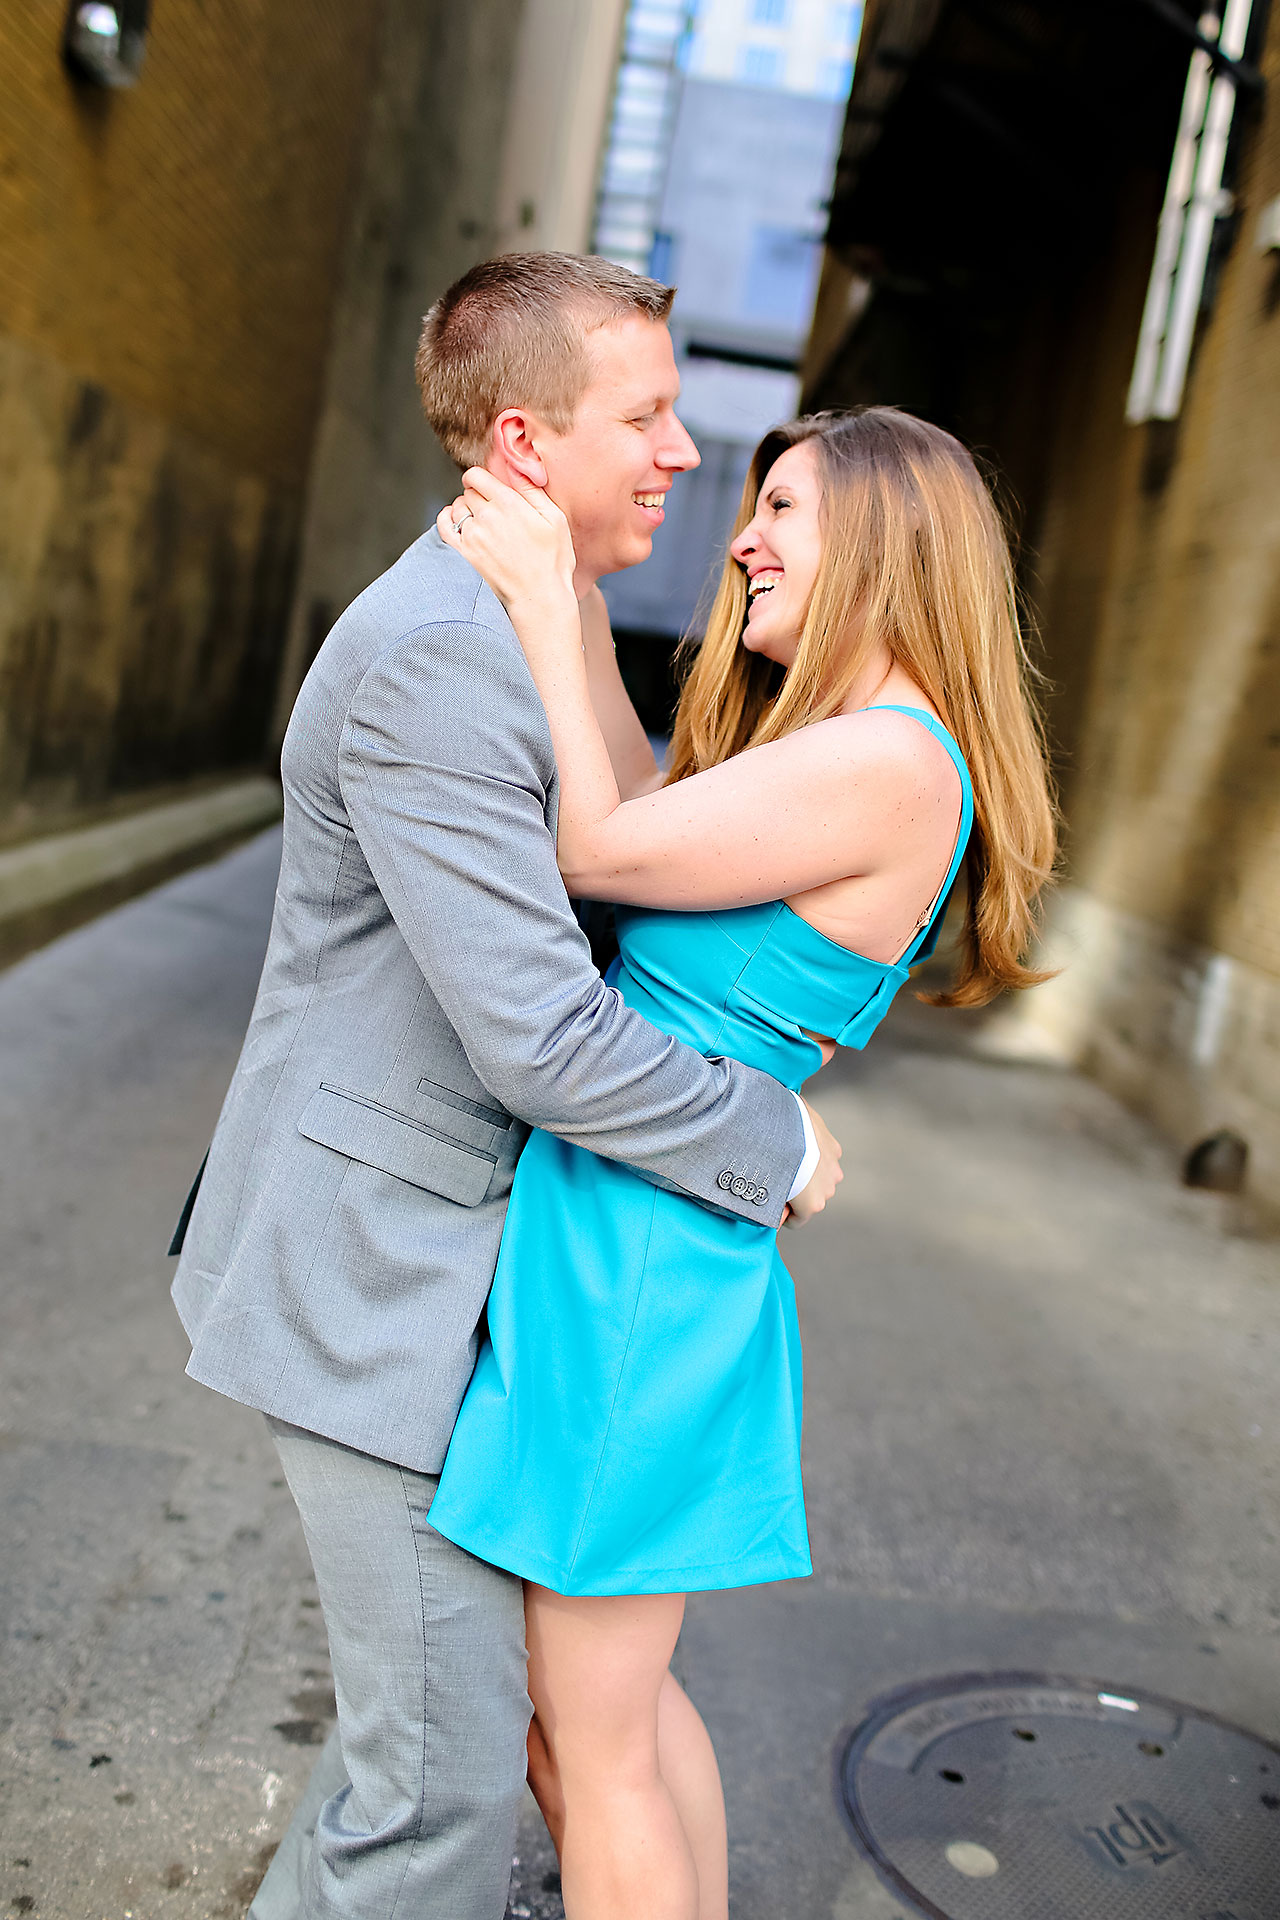 Chelsea Jeff Downtown Indy Engagement Session 107